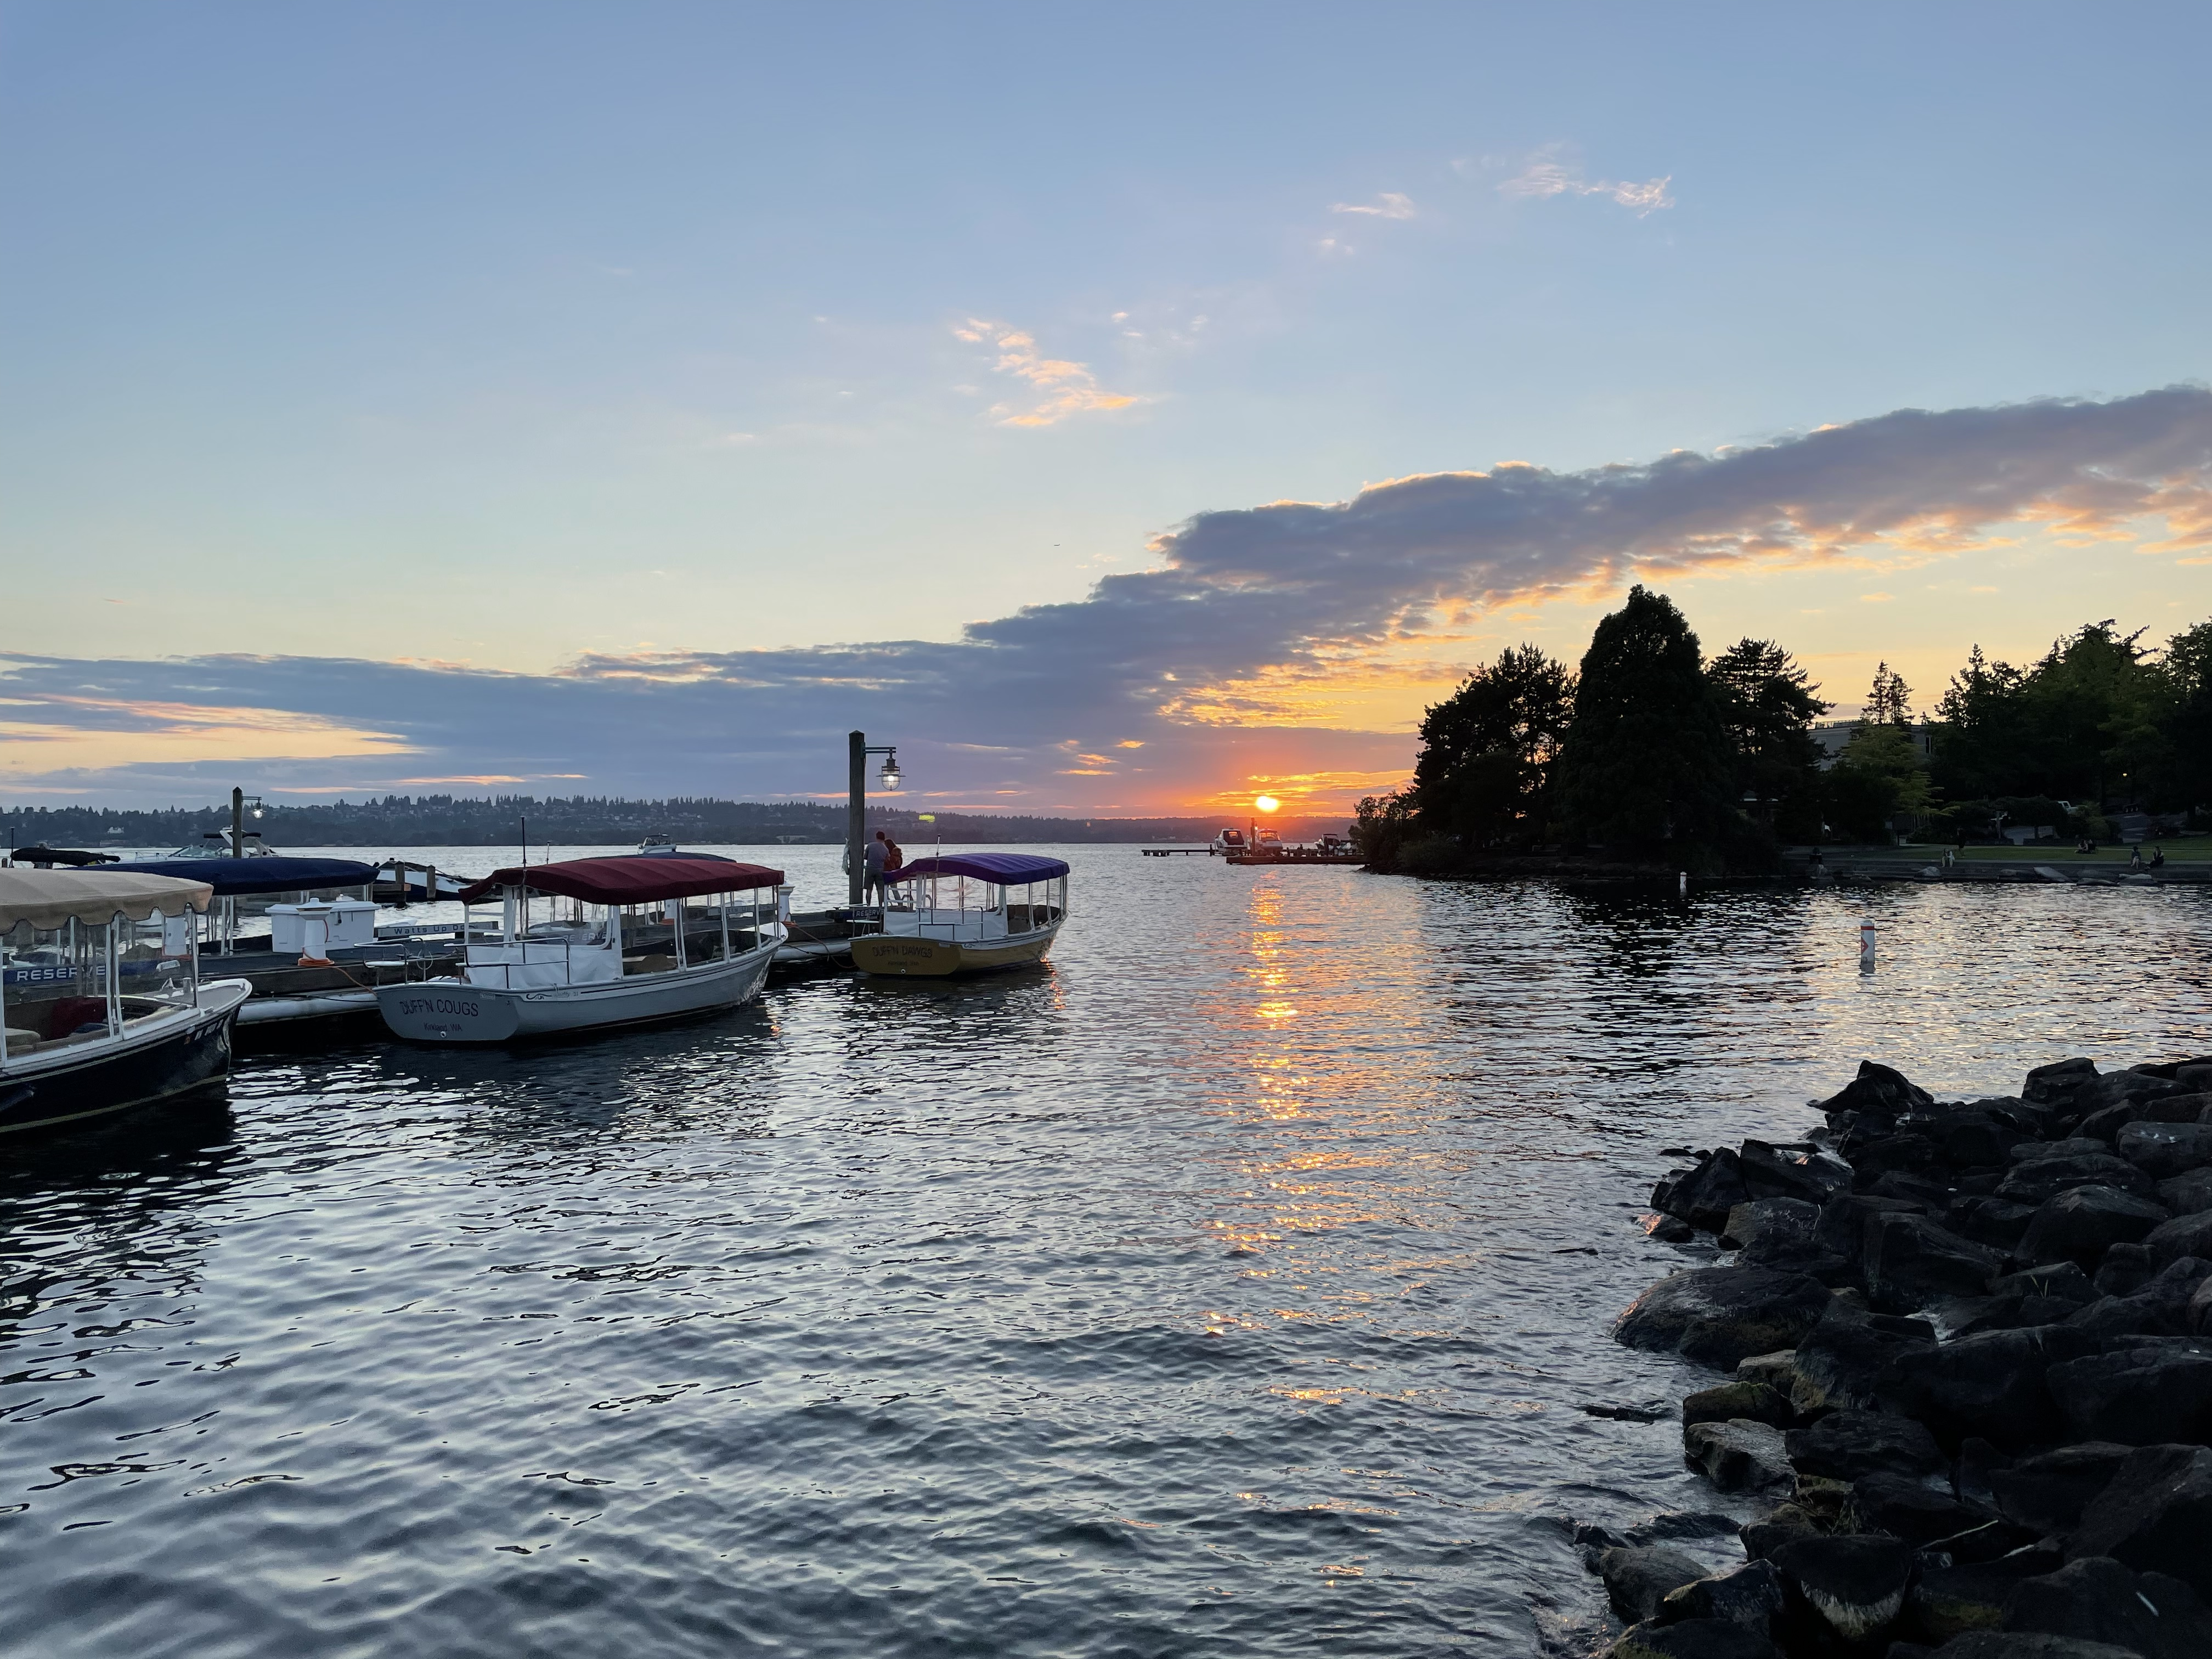 A picture of a sunset in Kirkland